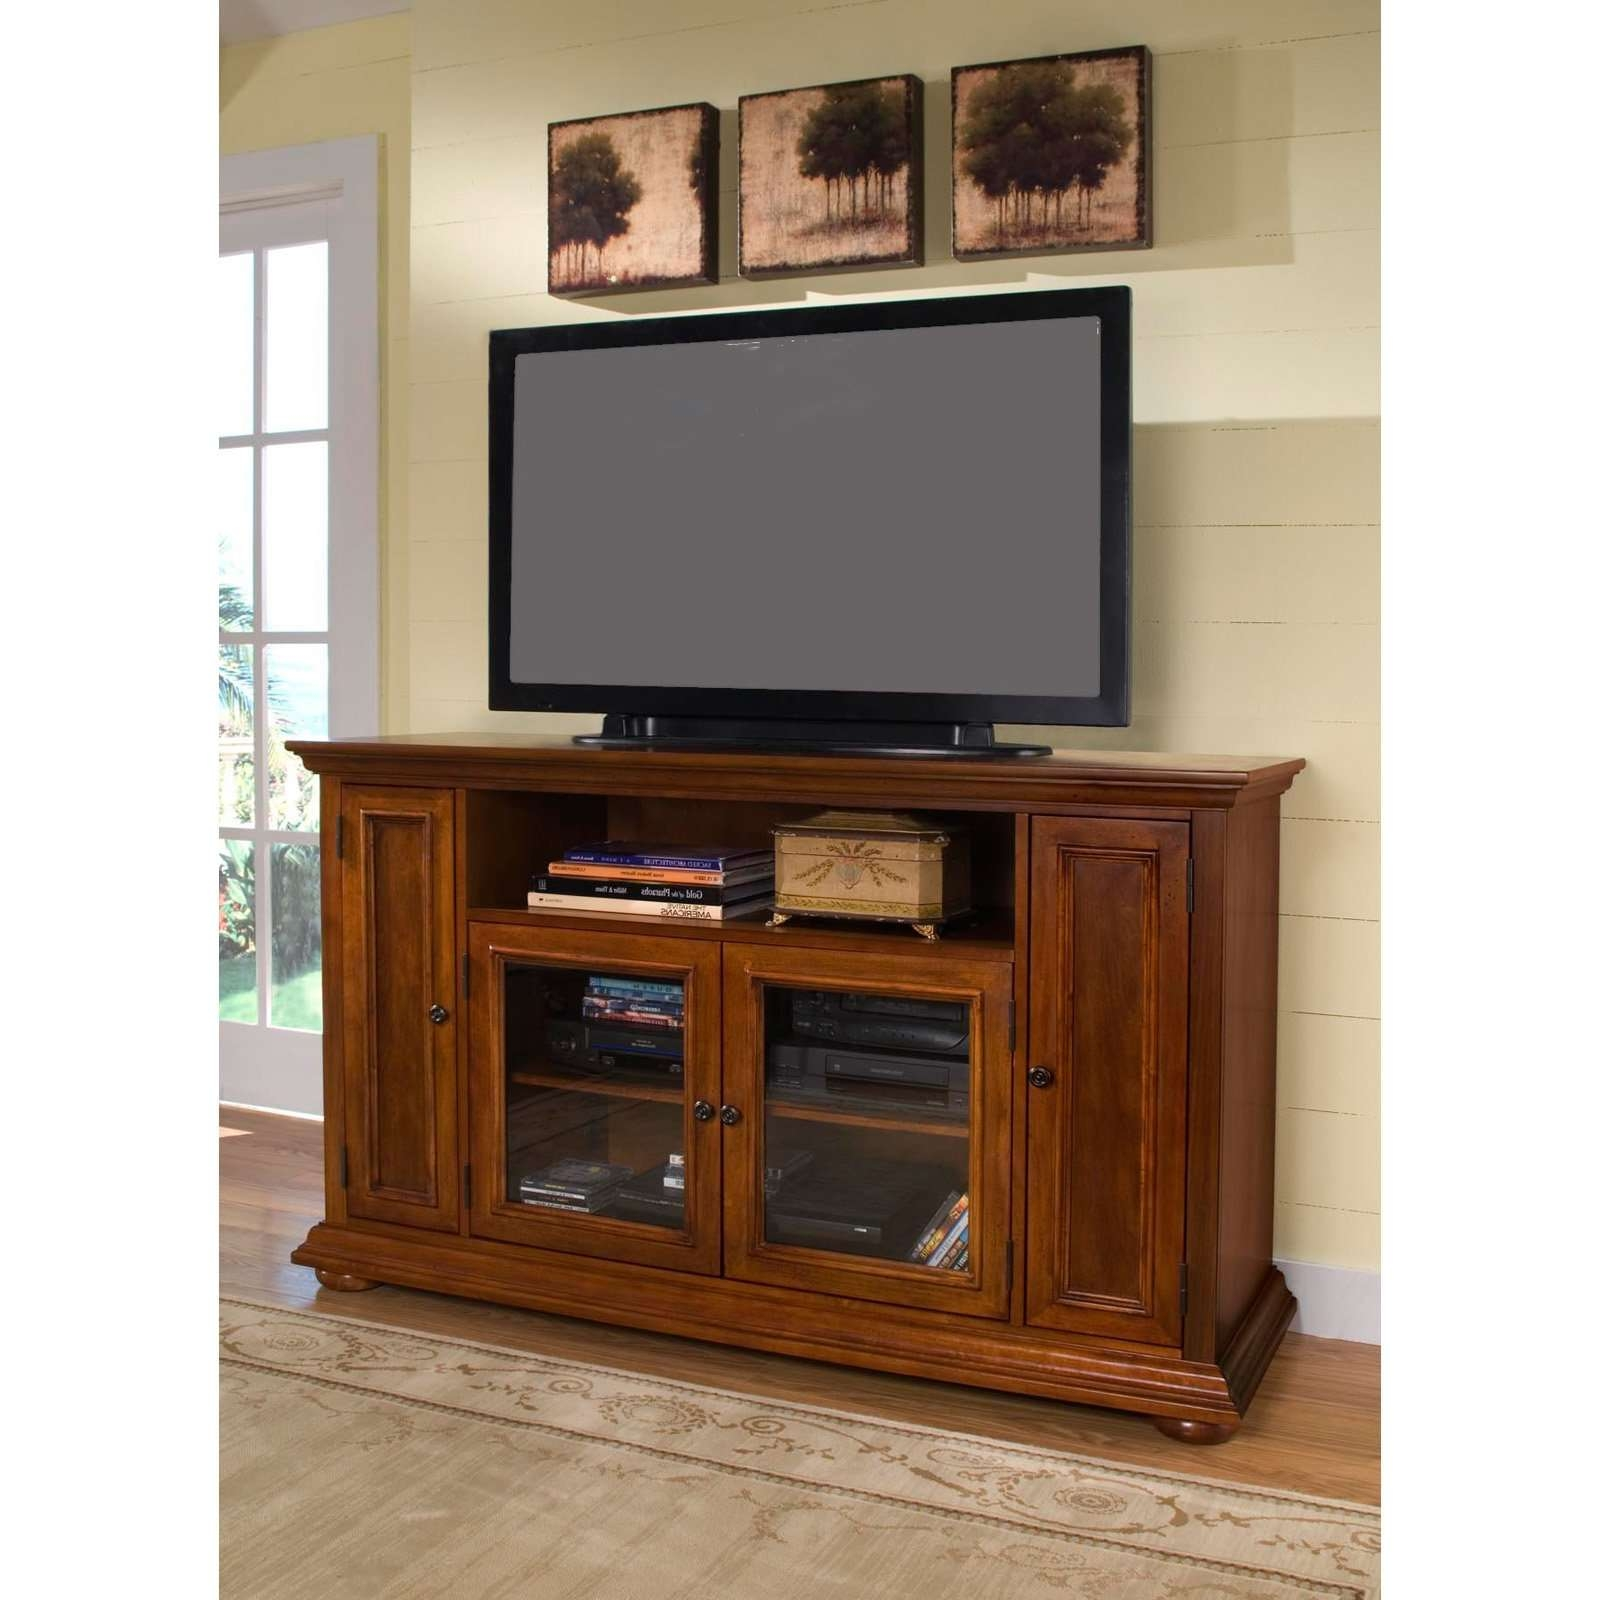 Rectangle Black Flat Screen Tv Over Brown Wooden Cabinet With Pertaining To Wooden Tv Cabinets With Glass Doors (View 14 of 20)